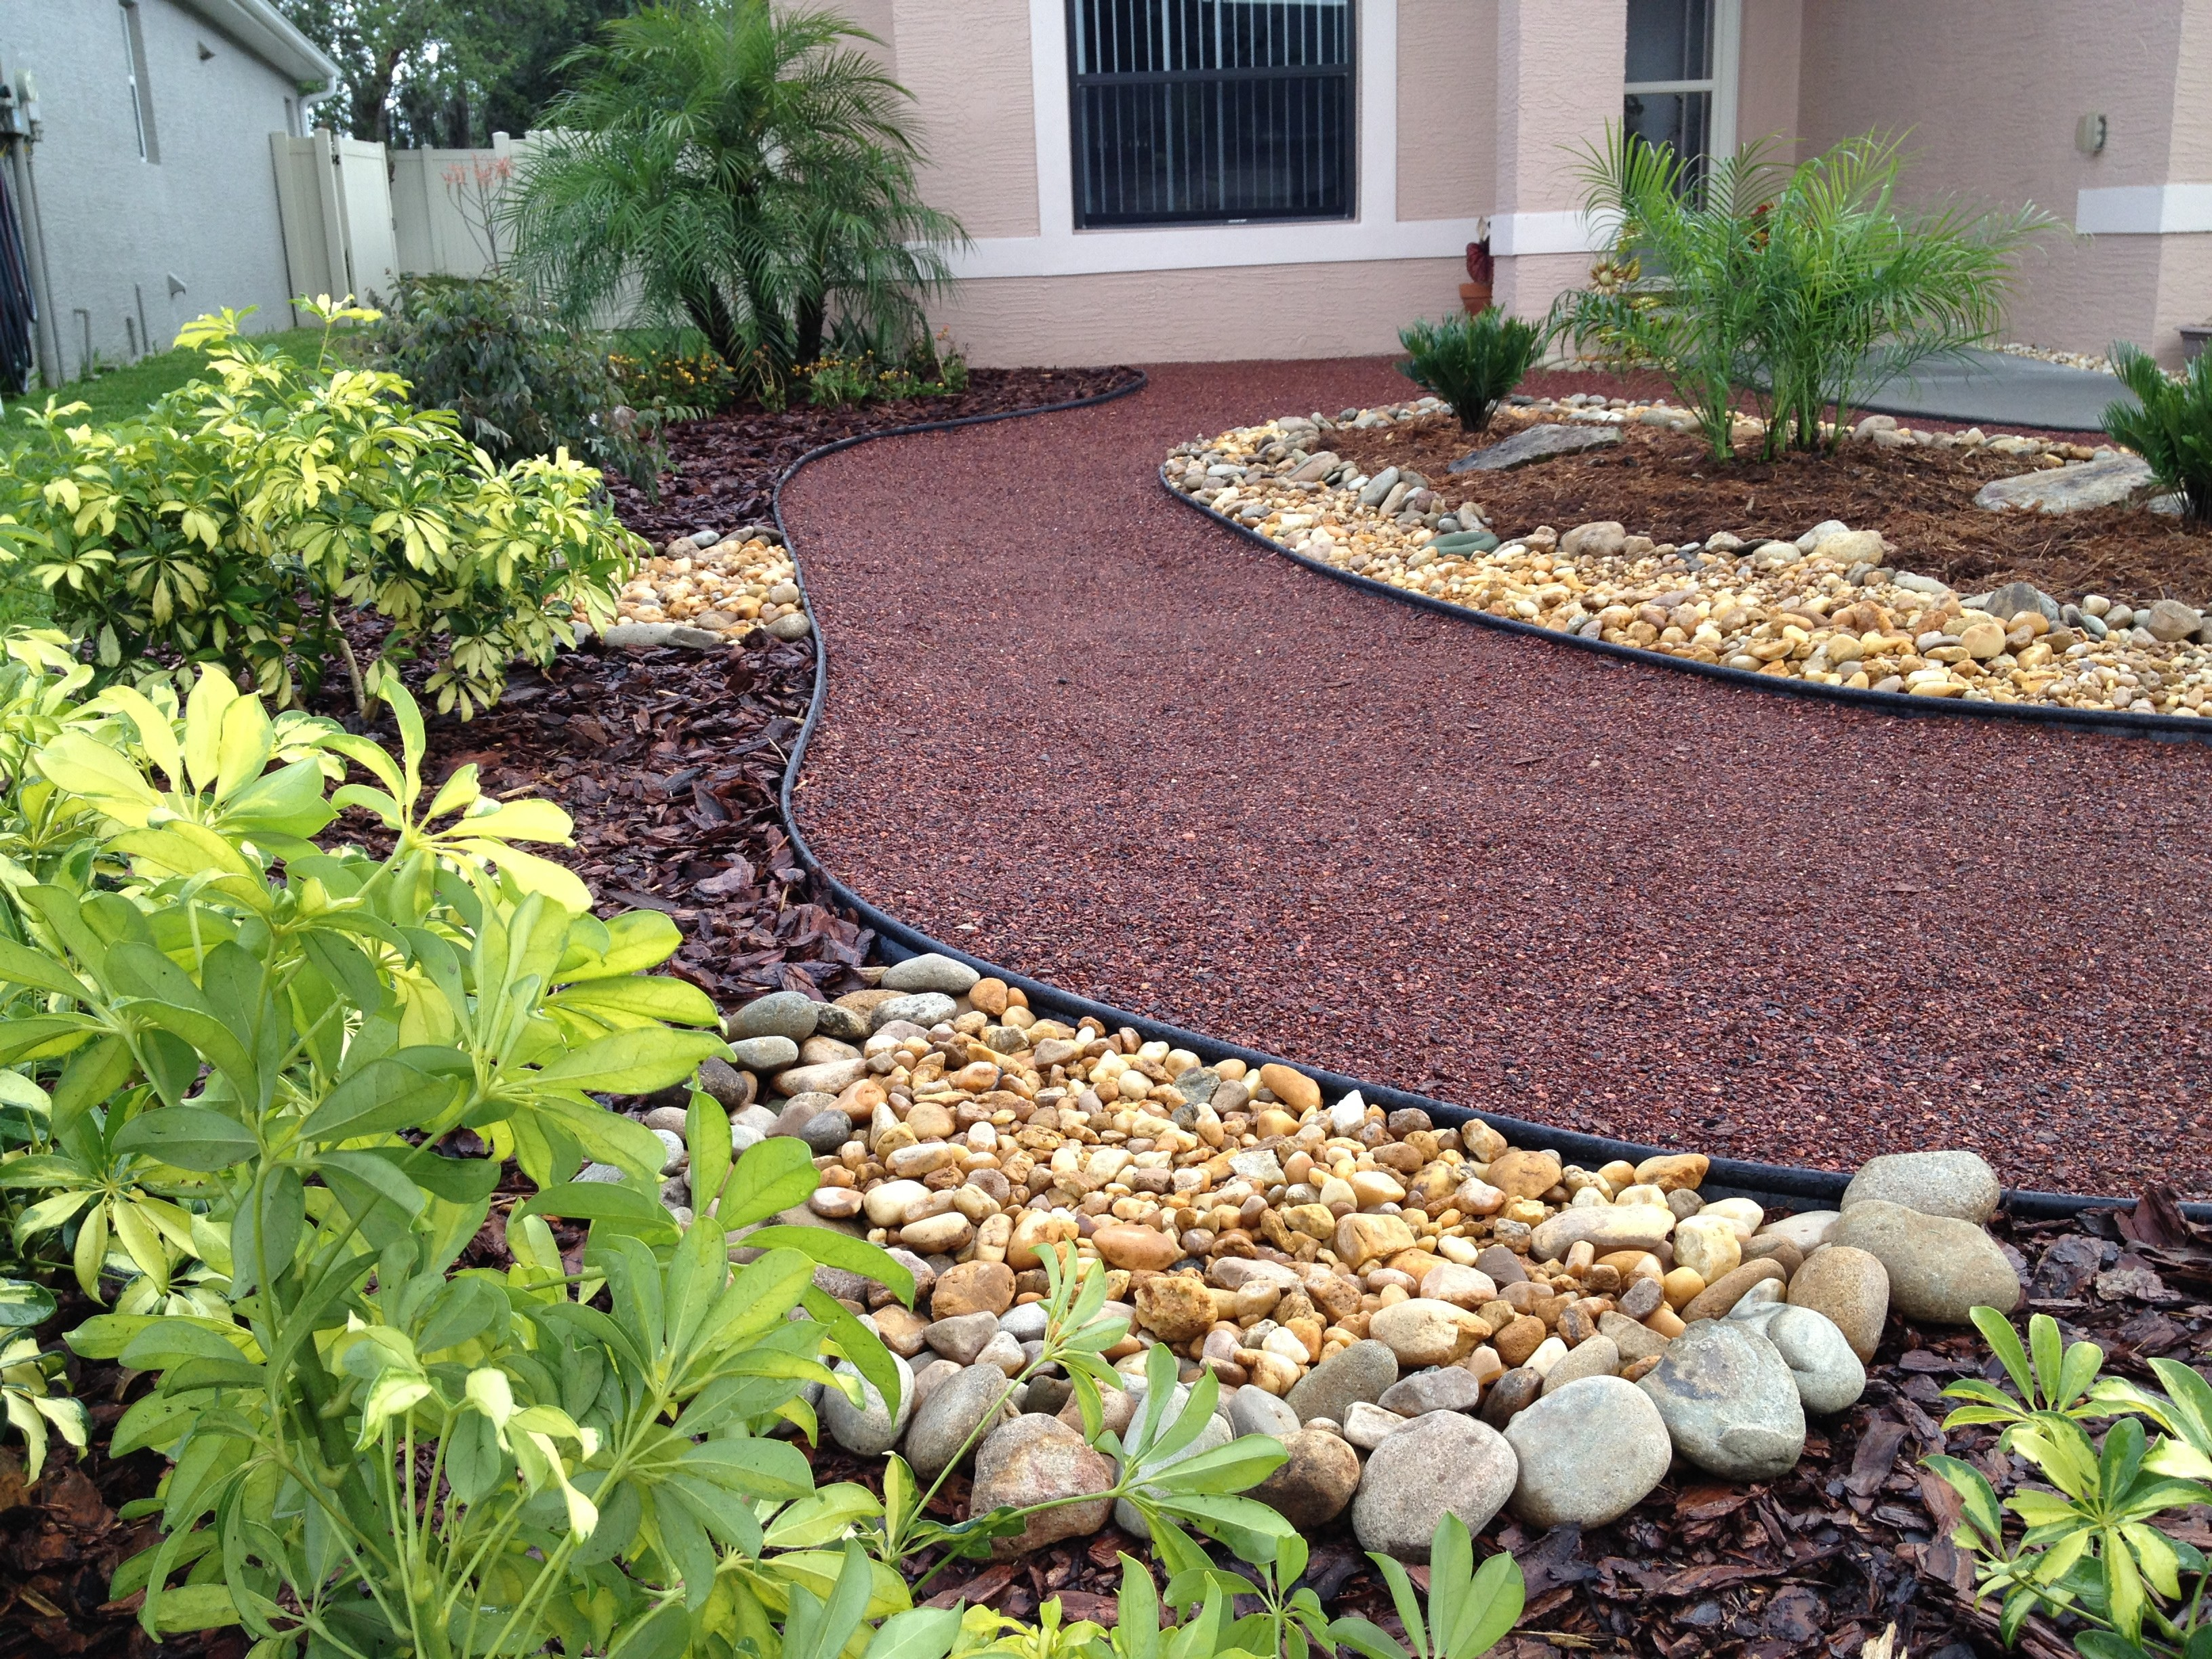 Diy Landscape Design For Beginners - Elly's DIY Blog